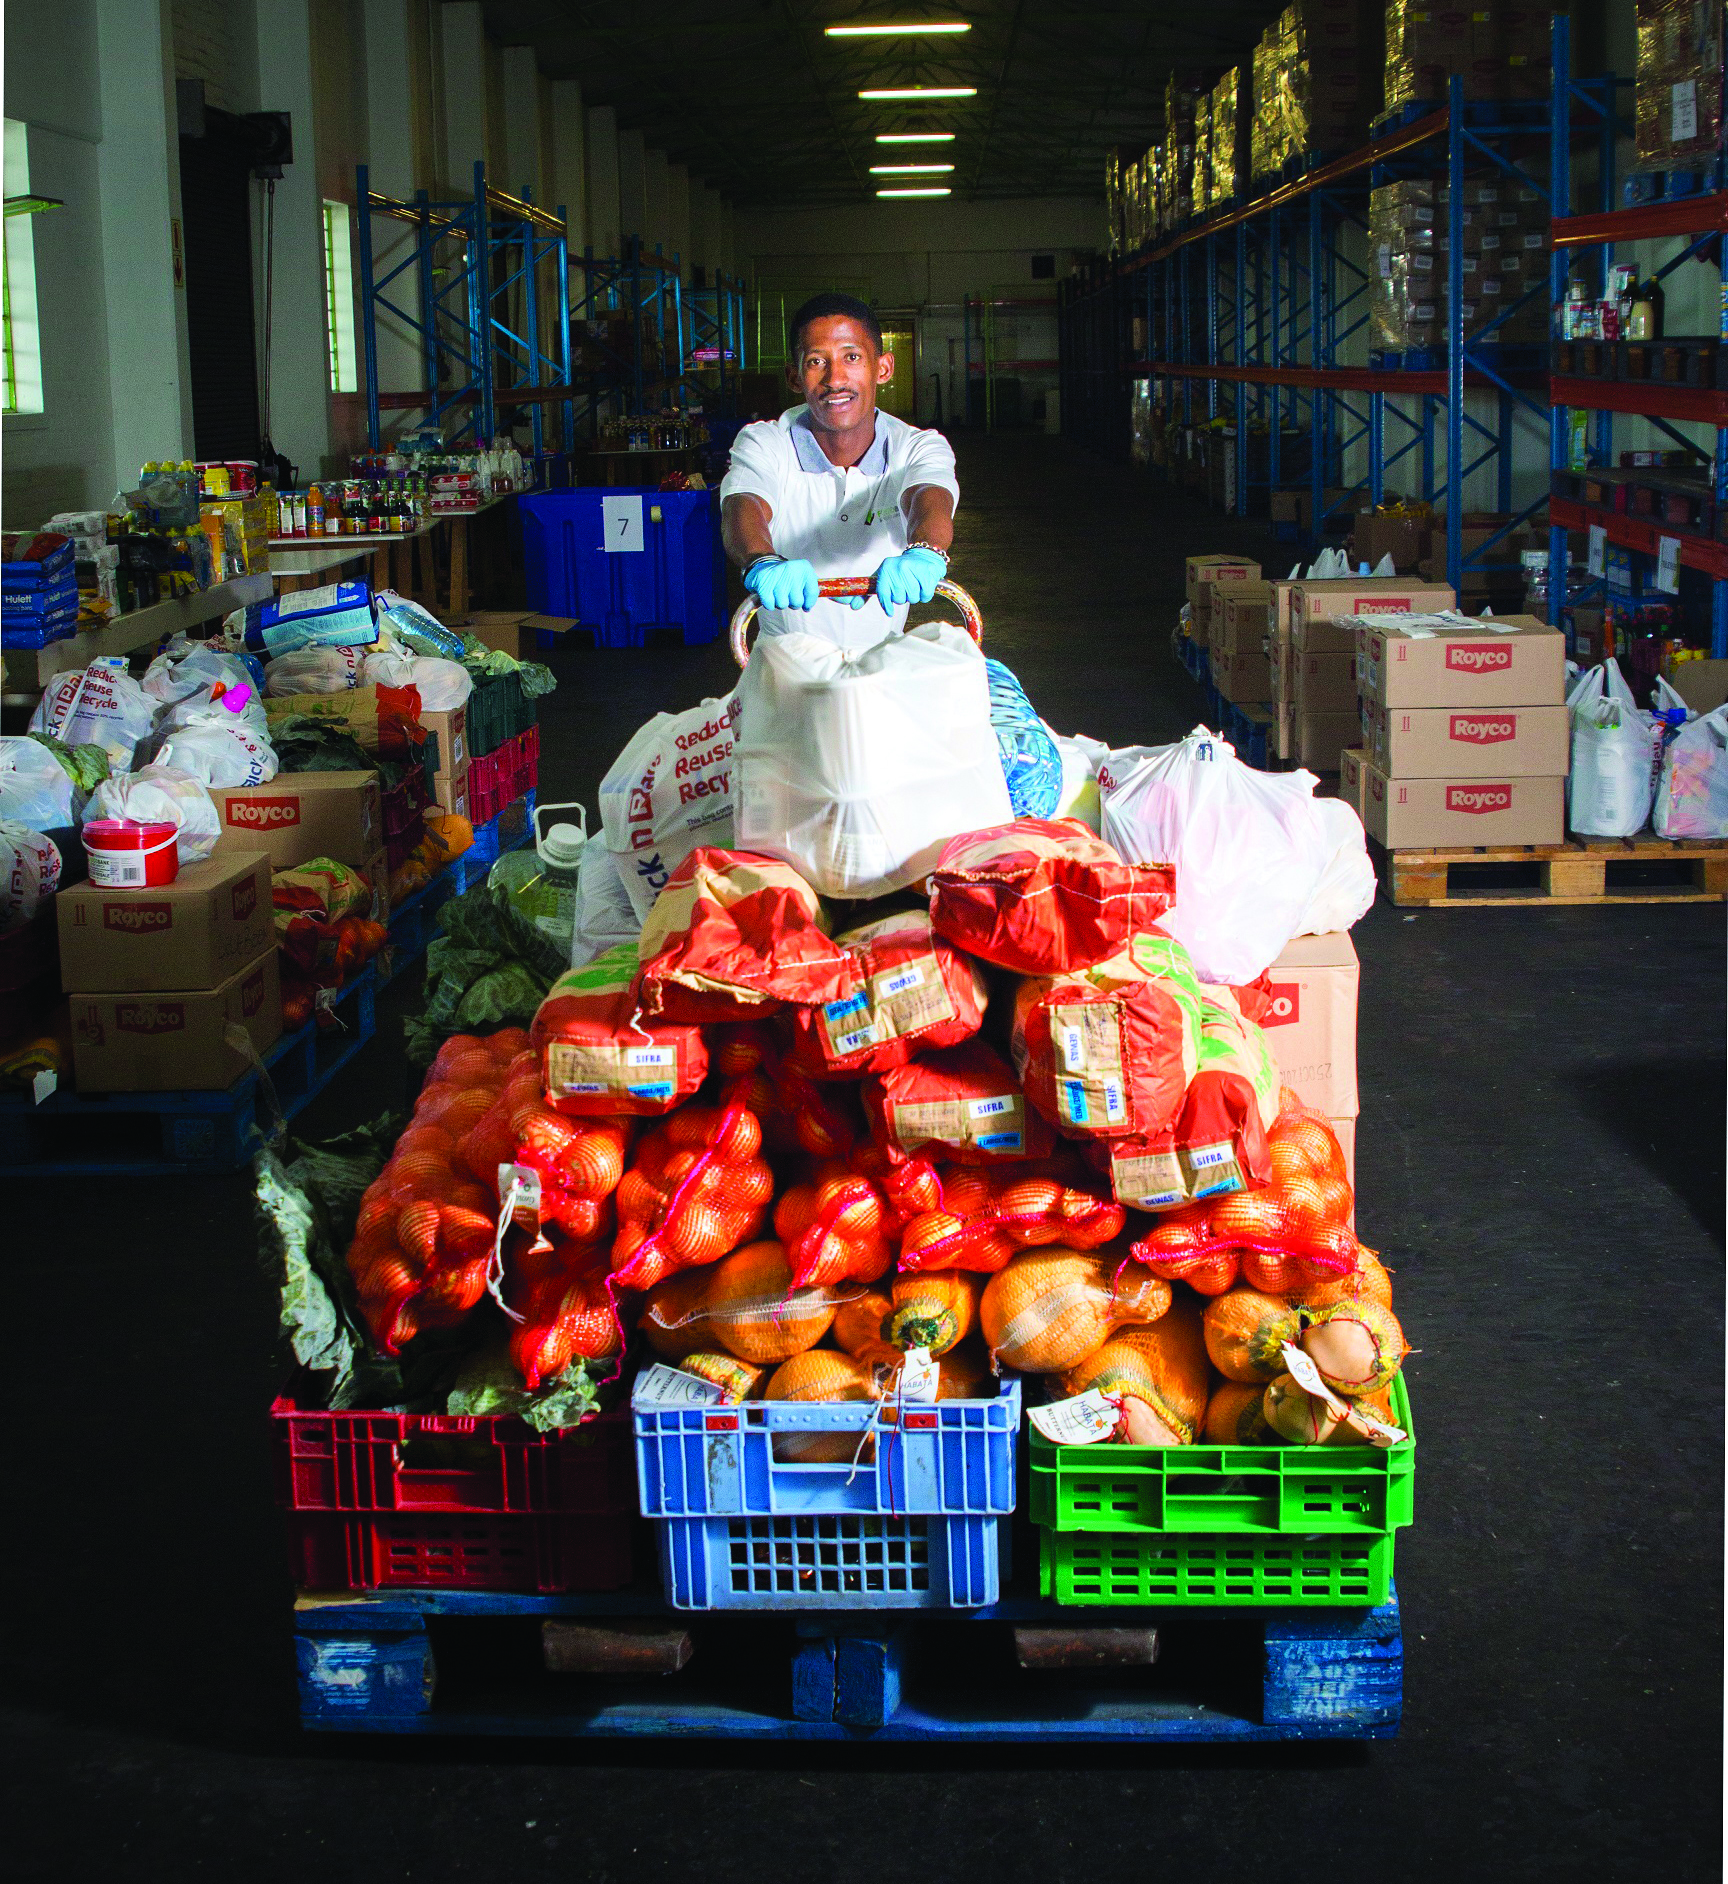 Image: Food donations